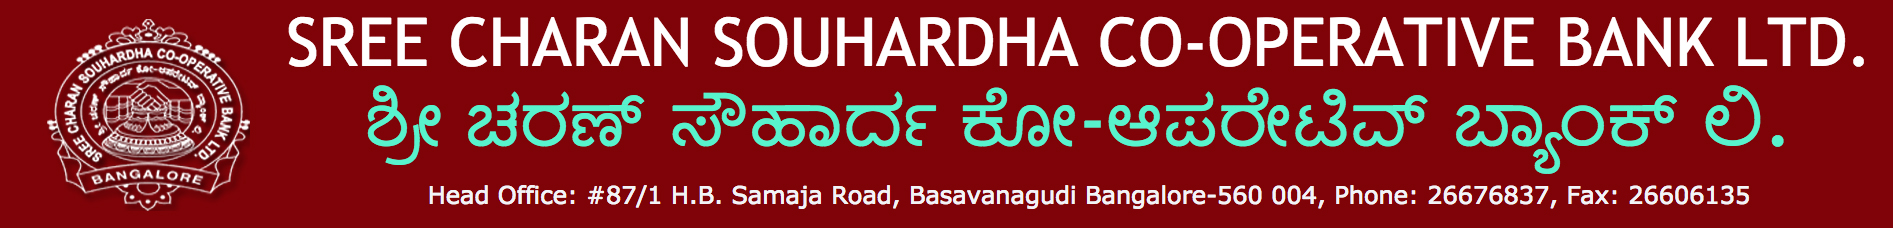 Sree Charan Souharda Co-Operative Bank Ltd.